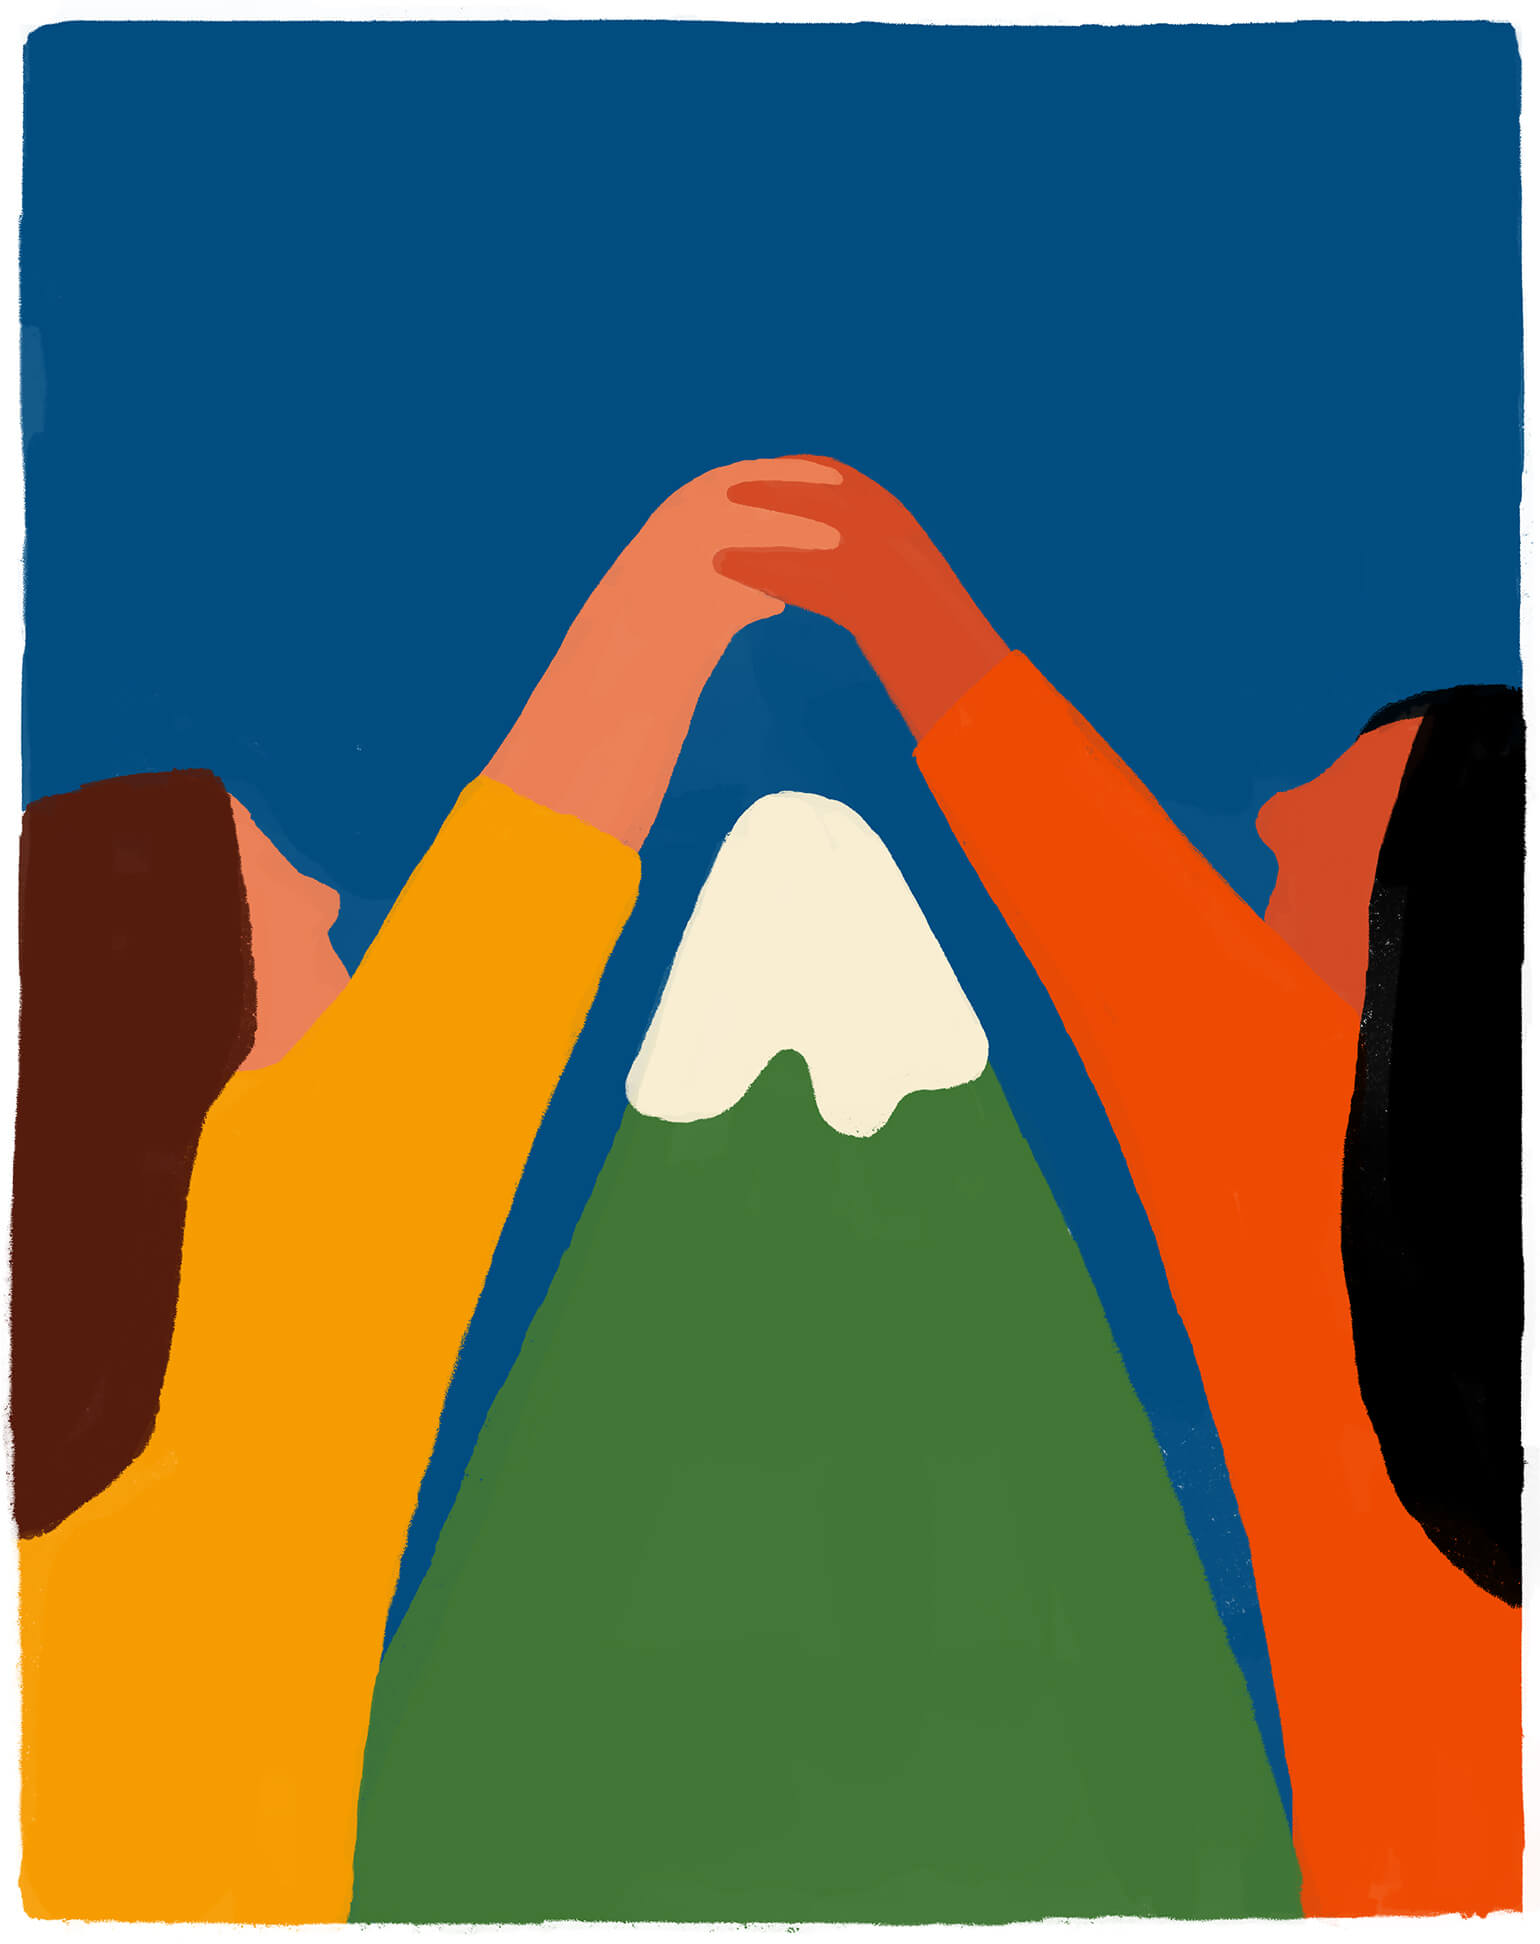 women-mountain-holding-hands-illustration-connection-violeta-noy